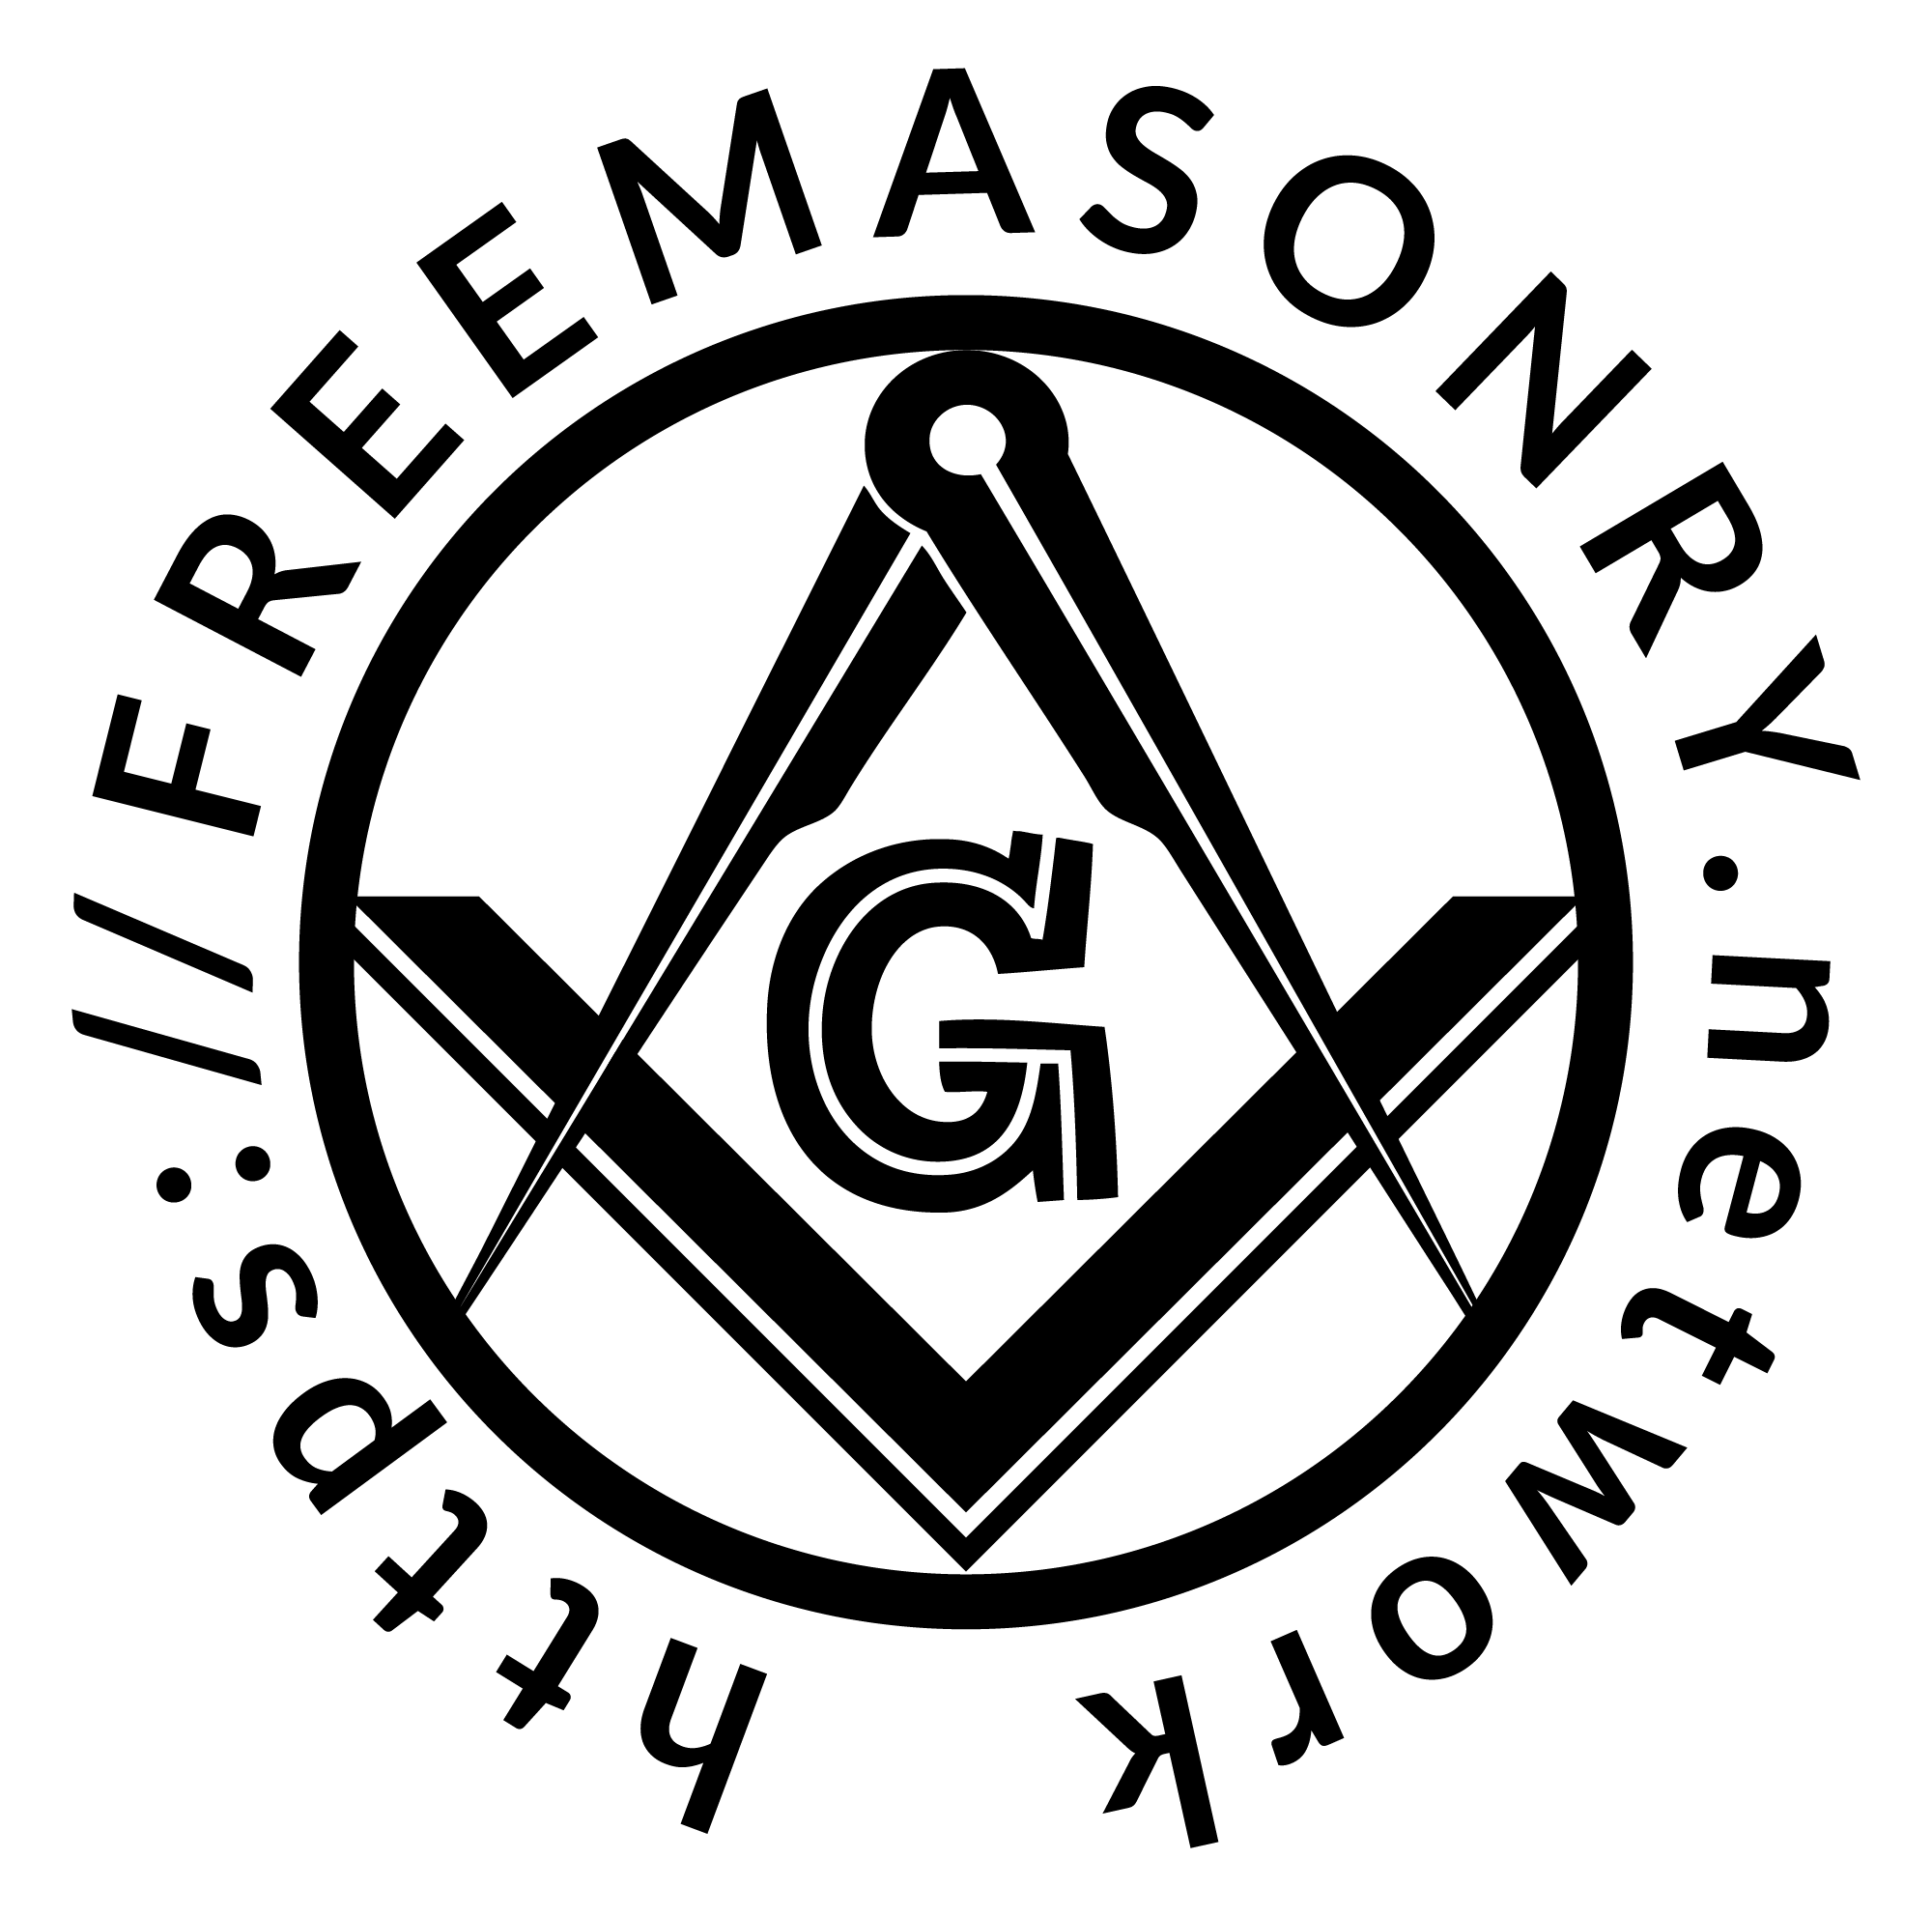 MASTER MASON (National Mexican Rite)